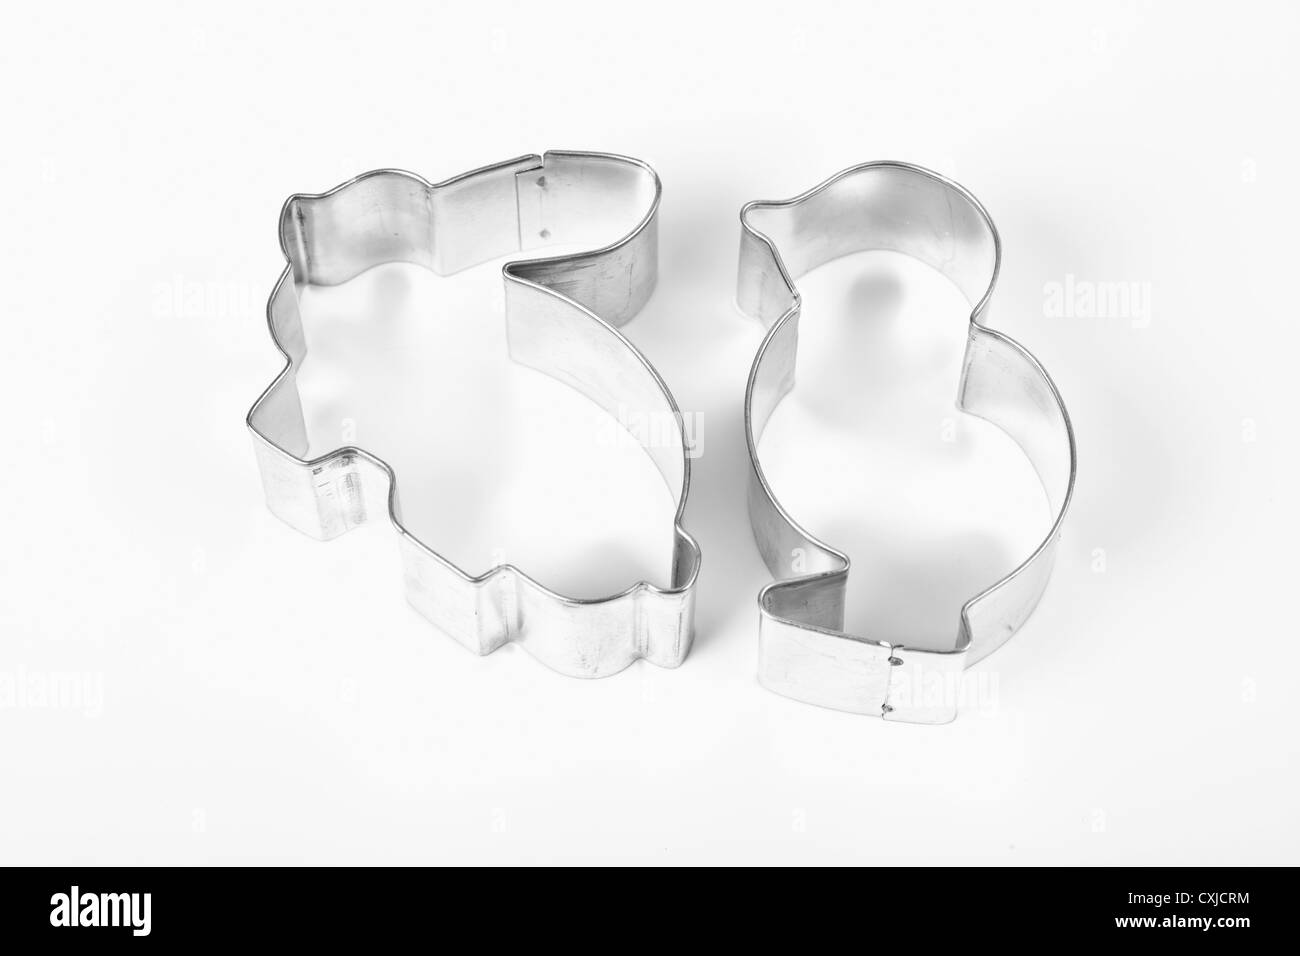 Cookie cutters in the traditional shape of a rabbit and a chick, used to make homemade cookies for the Easter holiday - Stock Image